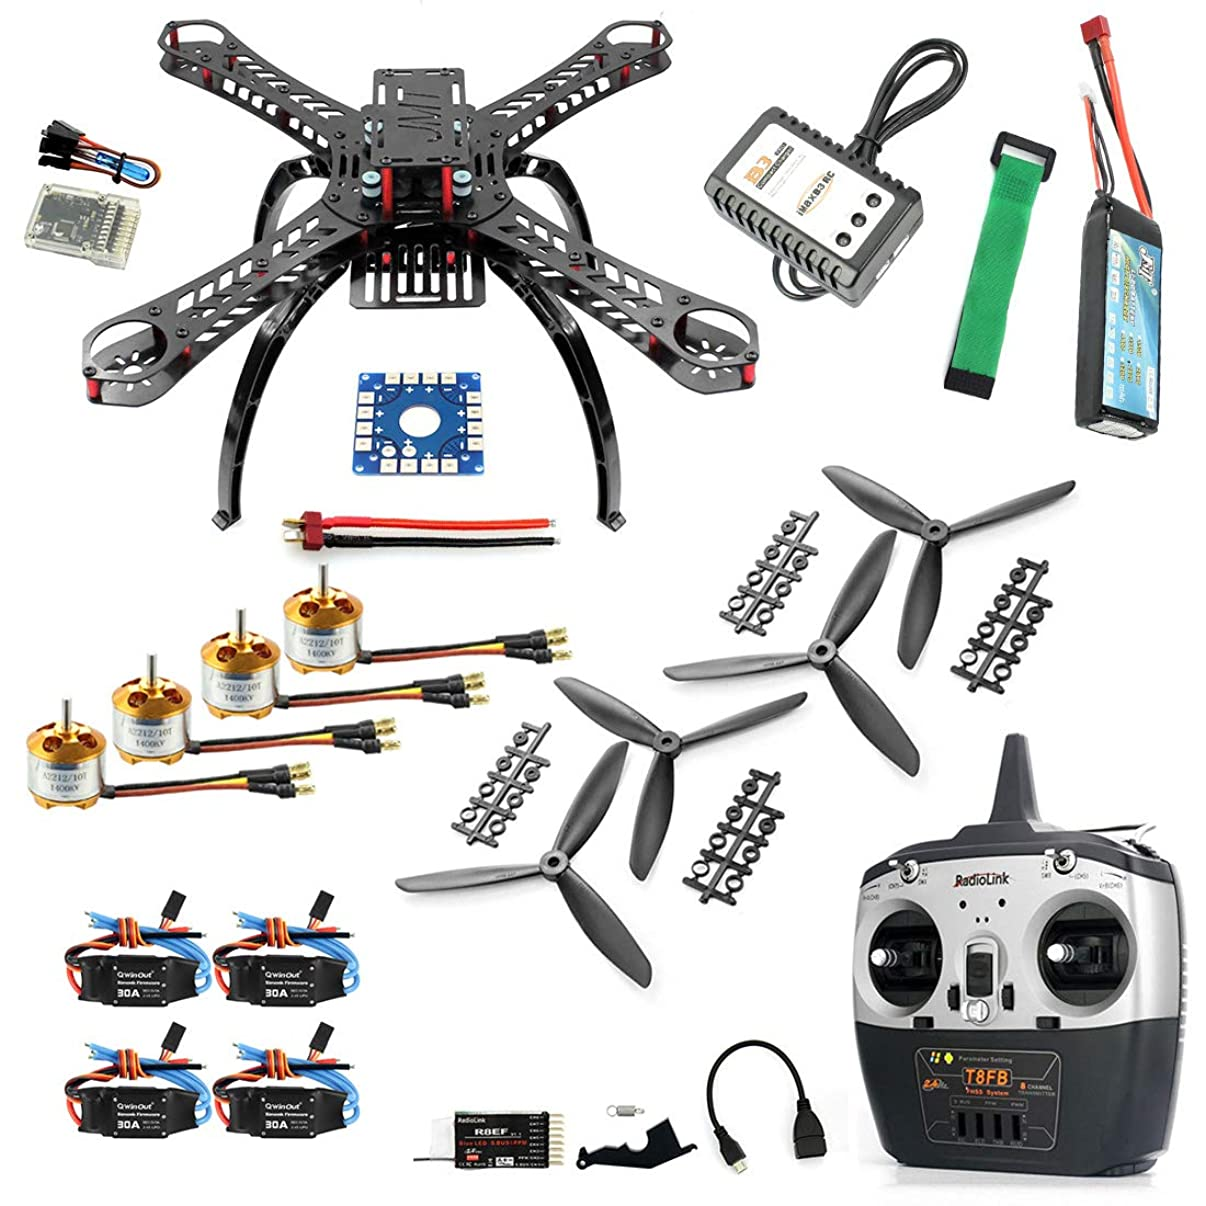 QWinOut QQ Super Multi-Rotor Flight Control DIY 310mm Fiberglass RC Racing Drone Unassembly ARF Combo Set with Radiolink 8CH TX&RX 1400KV Motor 30A ESC